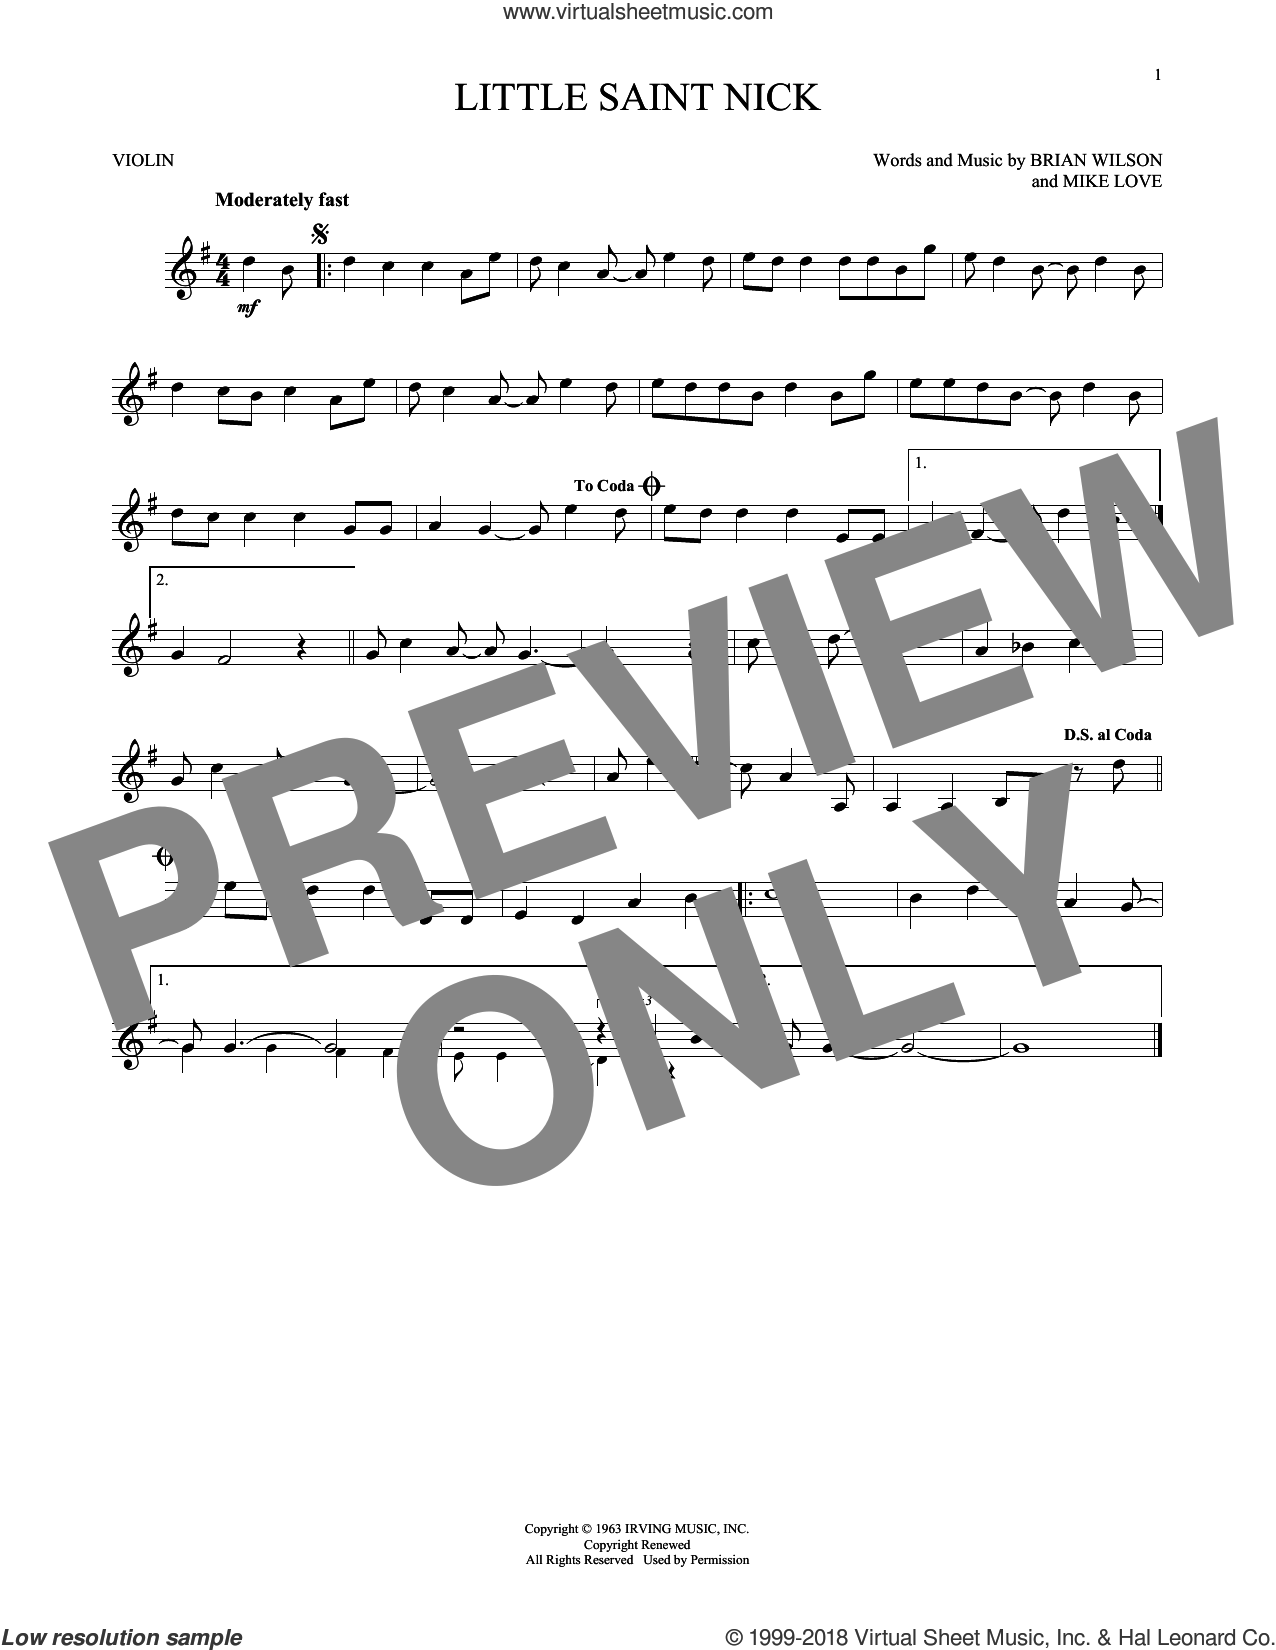 Little Saint Nick sheet music for violin solo by The Beach Boys, Brian Wilson and Mike Love, intermediate skill level